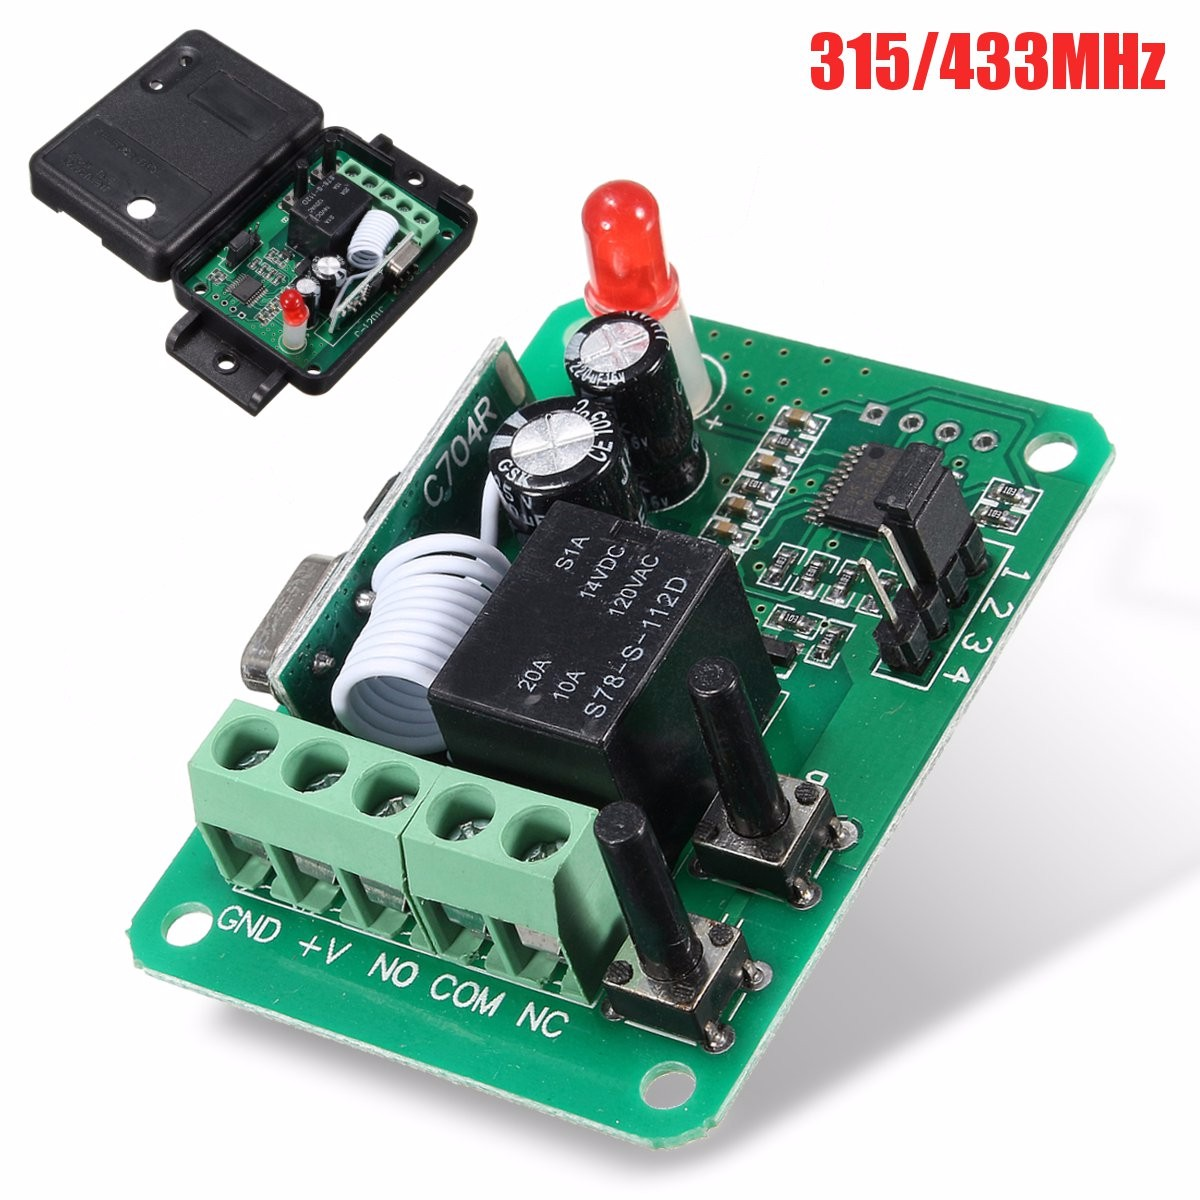 Dc12v 1ch 315 433mhz Wireless Time Delay Relay Rf Remote Control The Equipment Is Mode You 7f5e9767 86e9 4d97 8323 D7c4523b9a4a